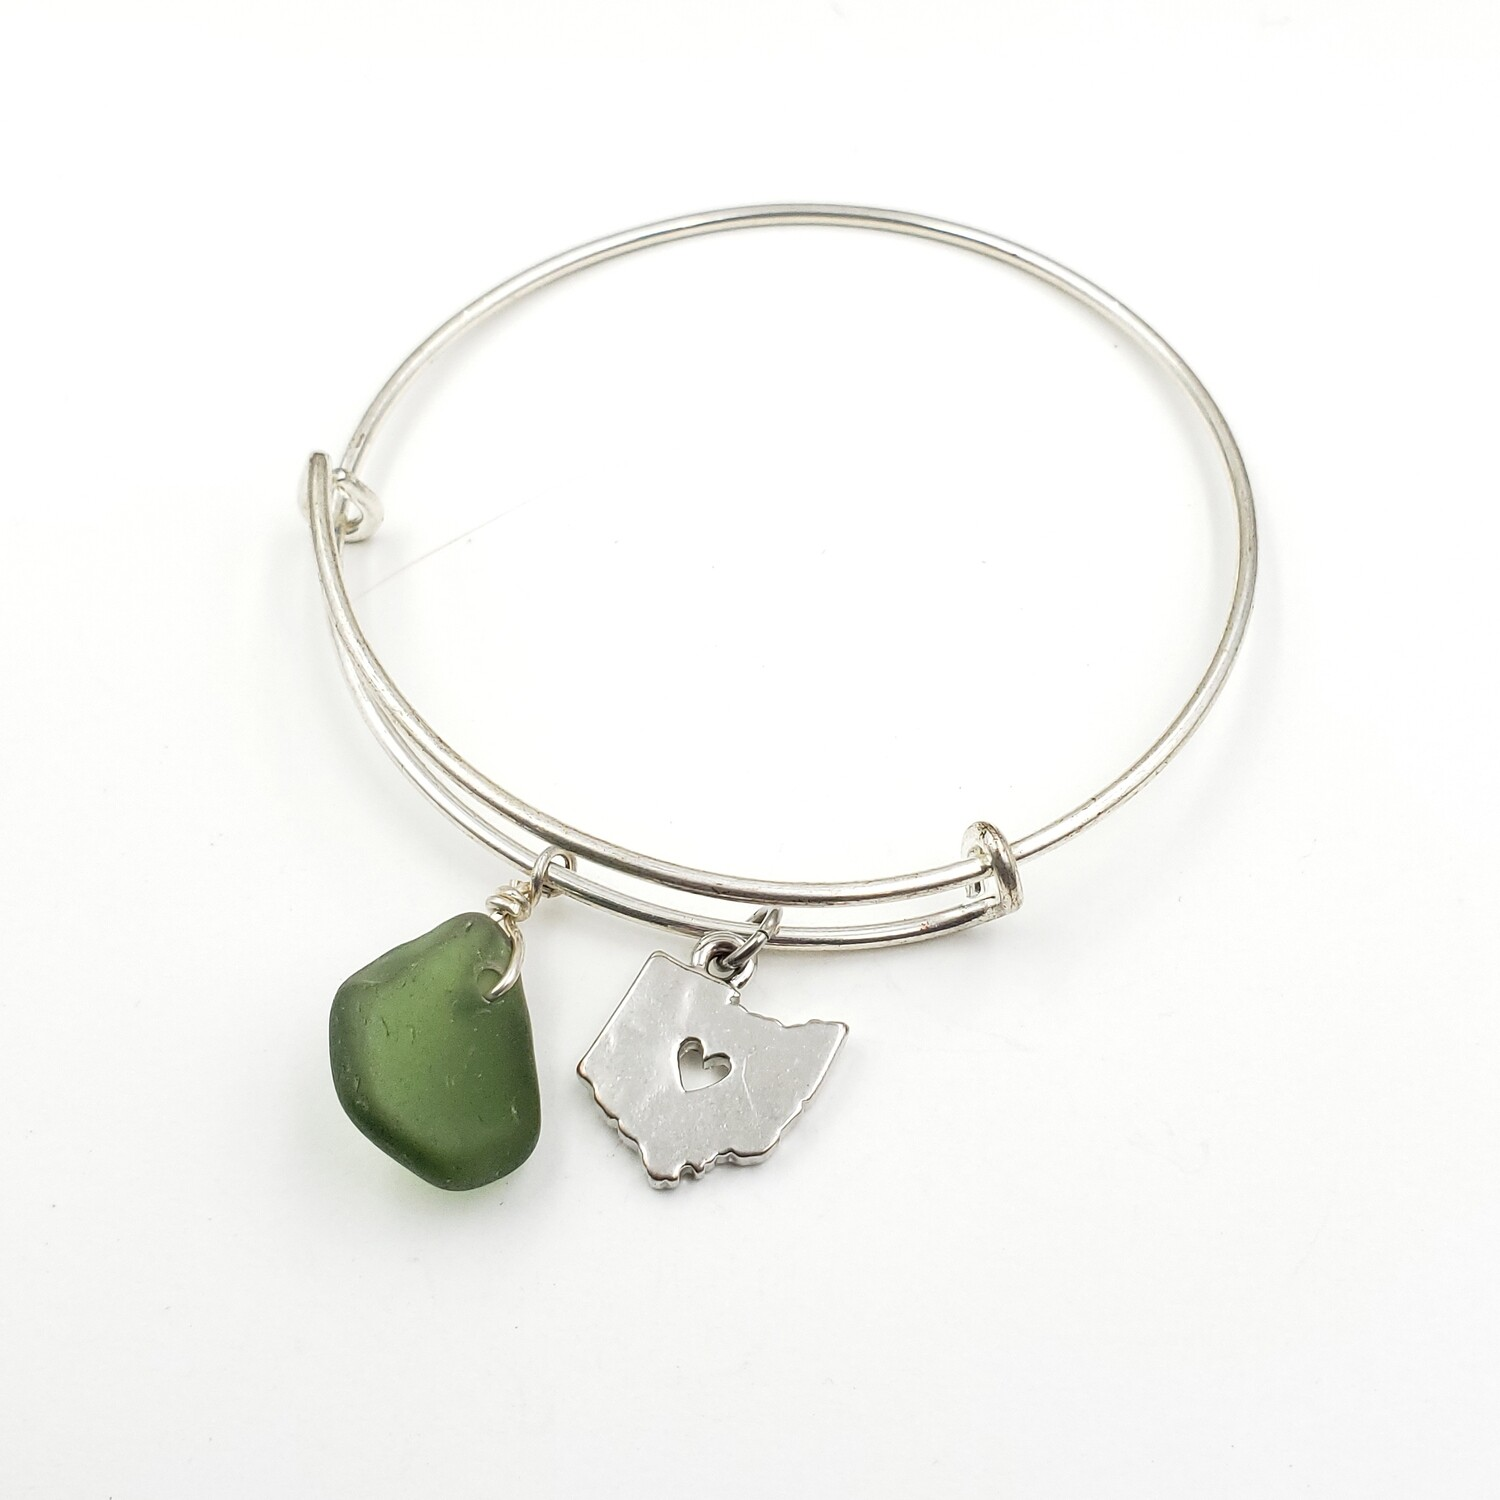 Bangle Bracelet with State of Ohio Charm and Olive Green Lake Erie Beach Glass